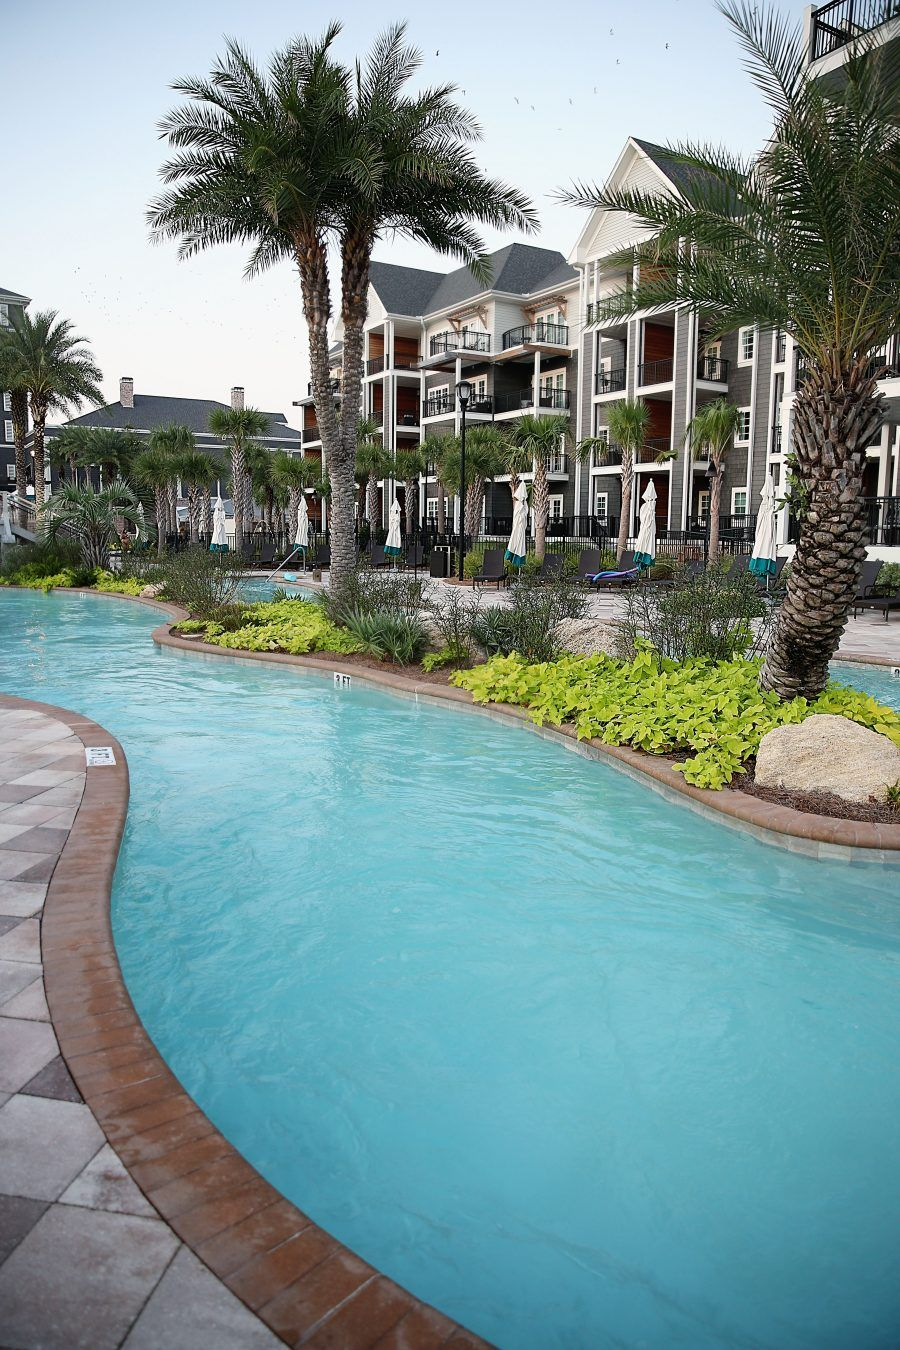 The Best Place To Stay In Destin Florida Hotels In Destin Florida Destin Florida Vacation Florida Resorts